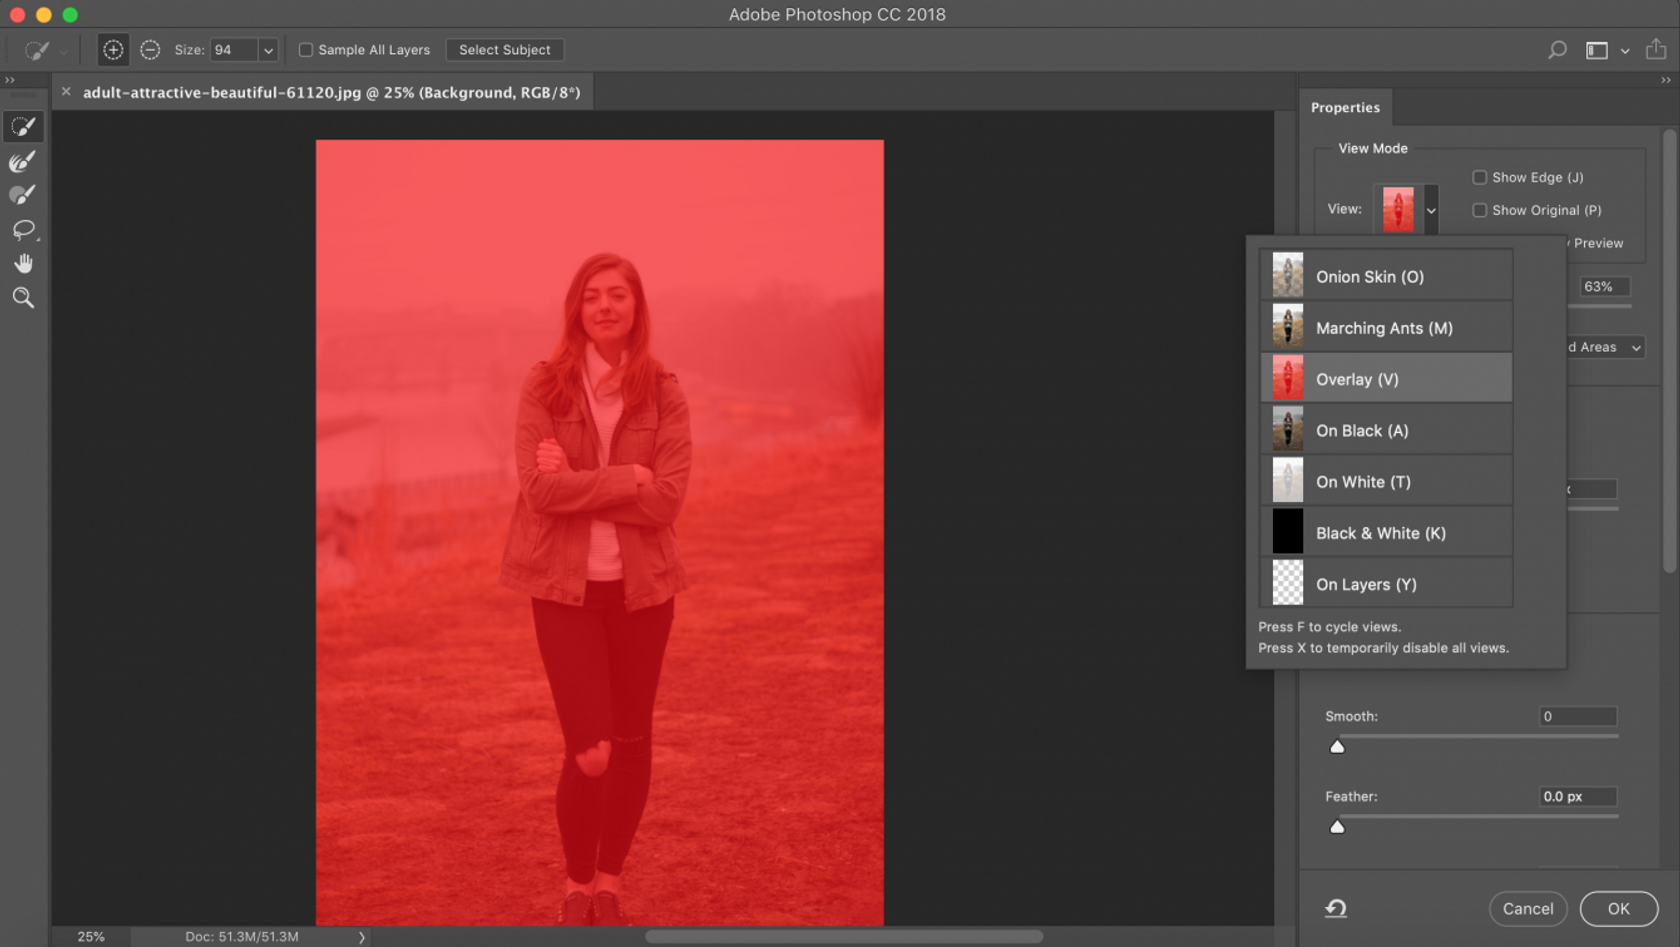 How to Smooth Edges in Photoshop: Photoshop Feather and Other Tools Image4